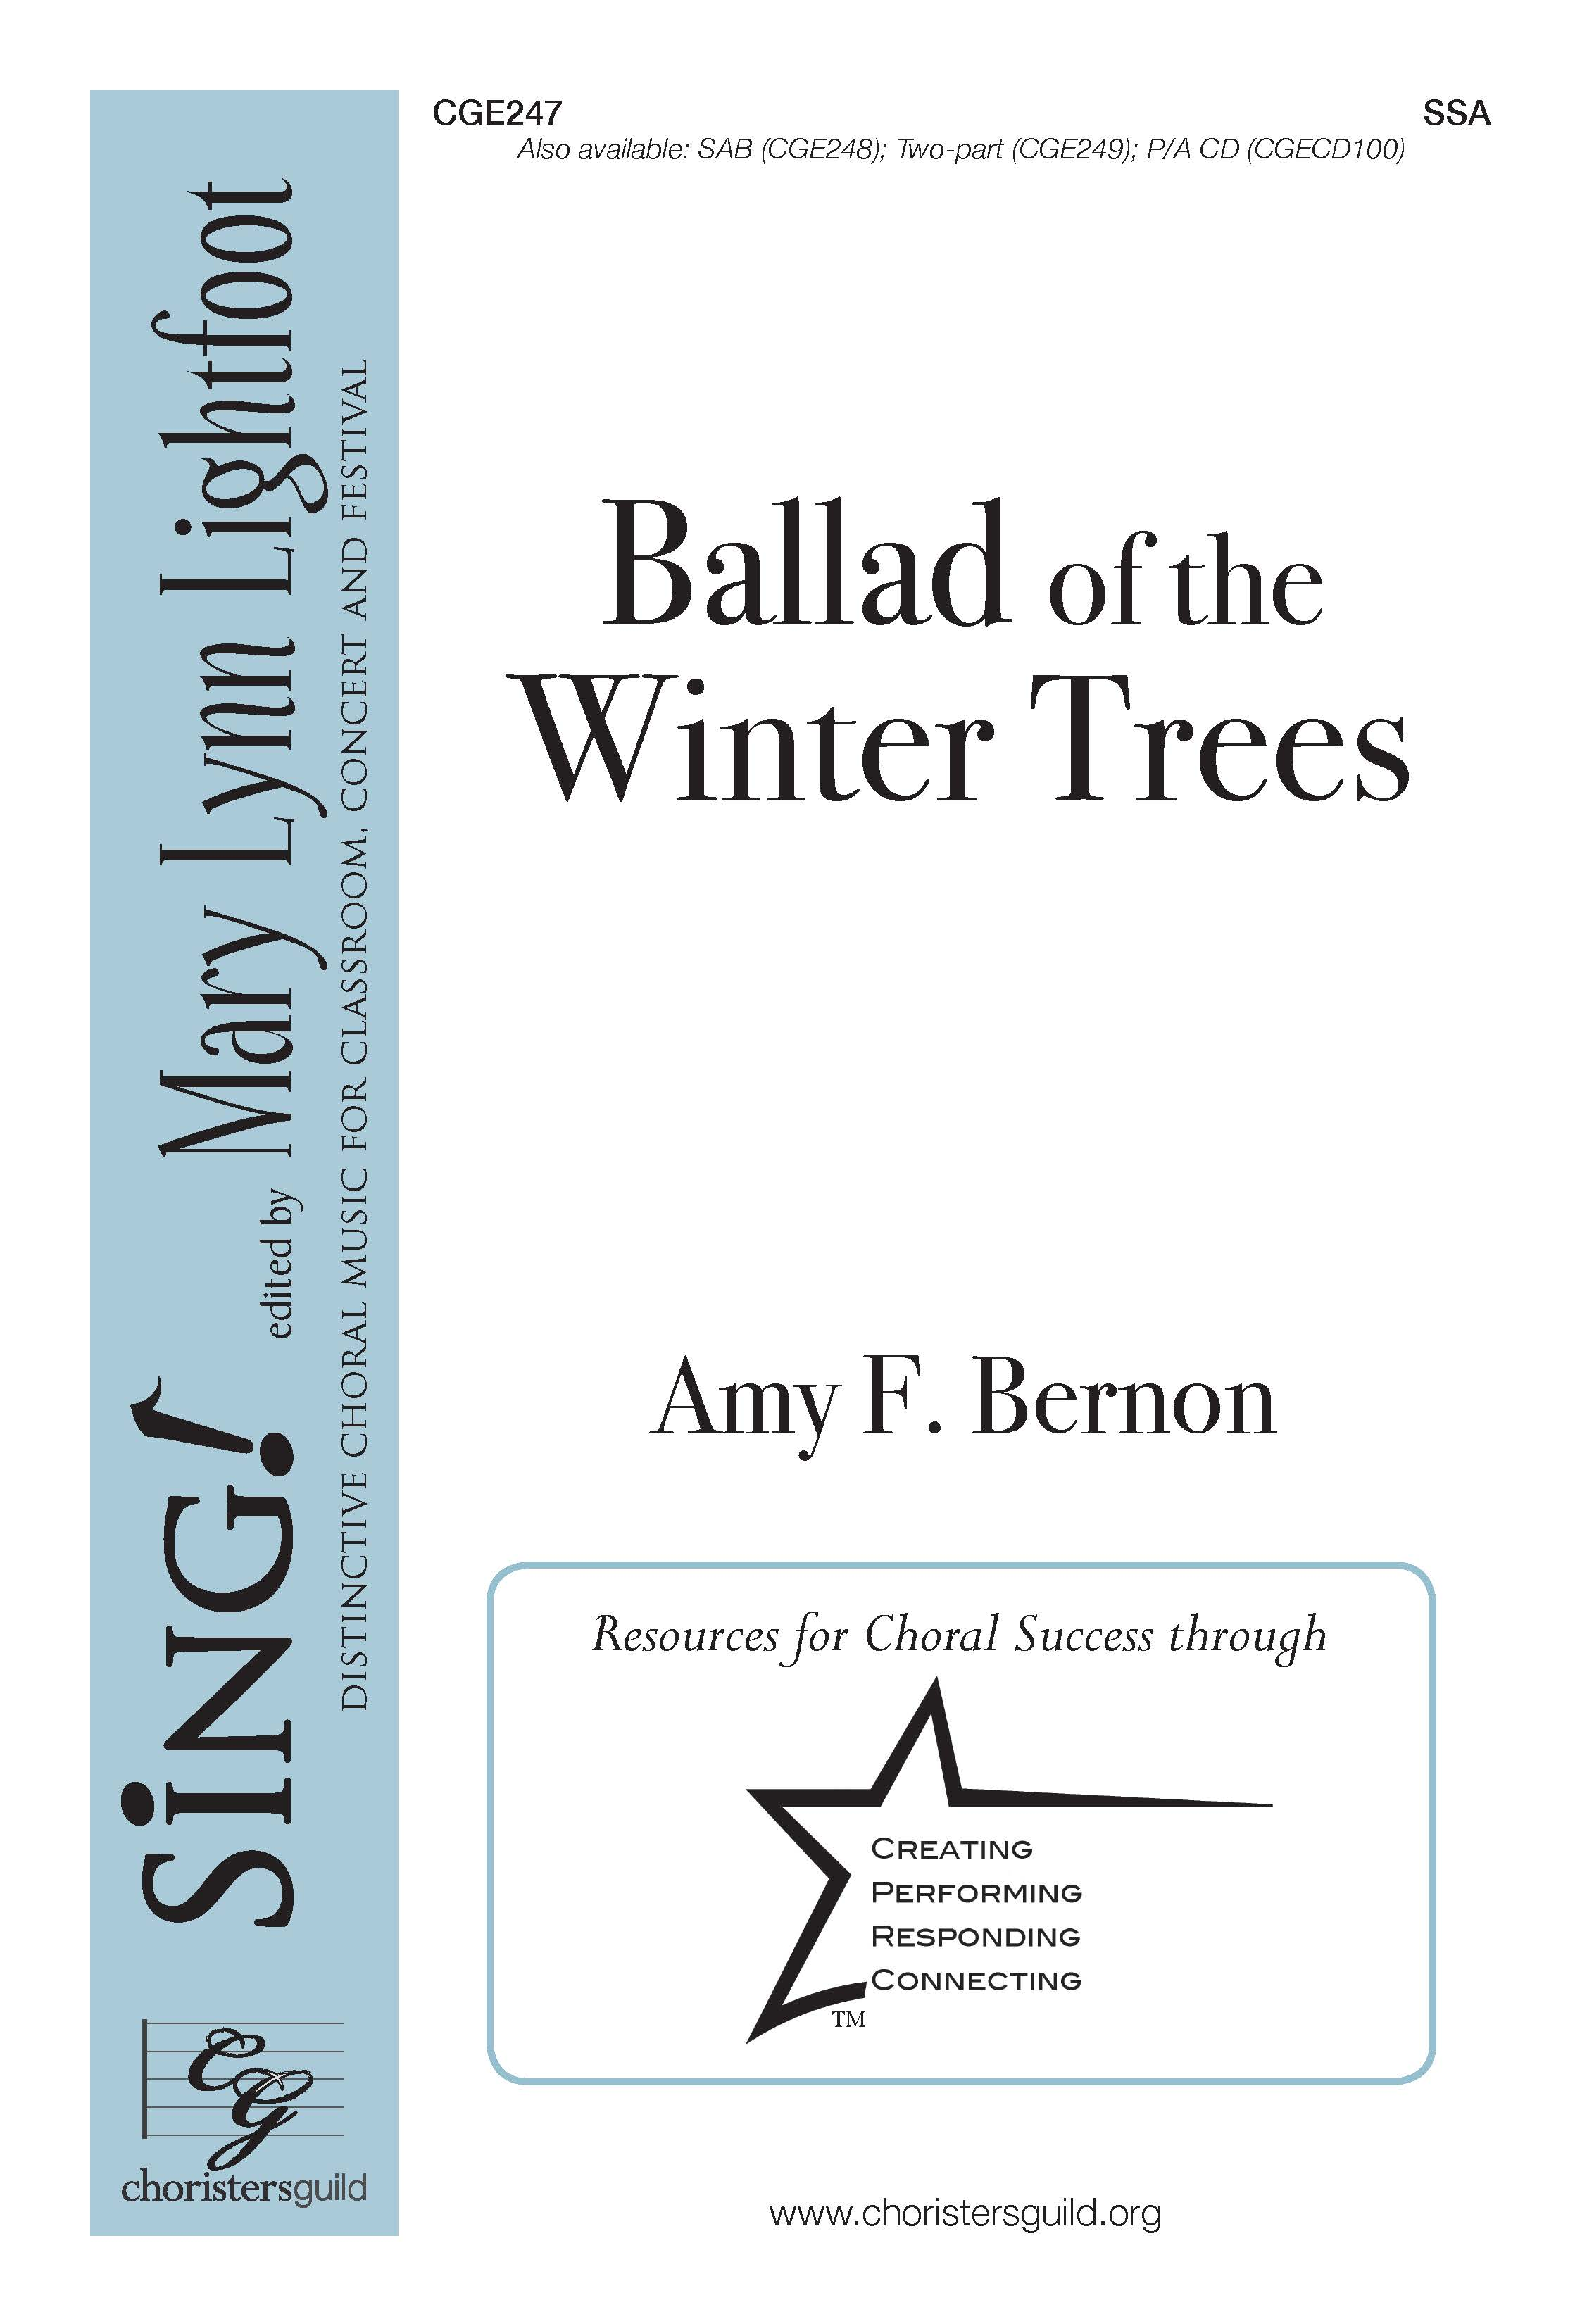 Ballad of the Winter Trees SSA